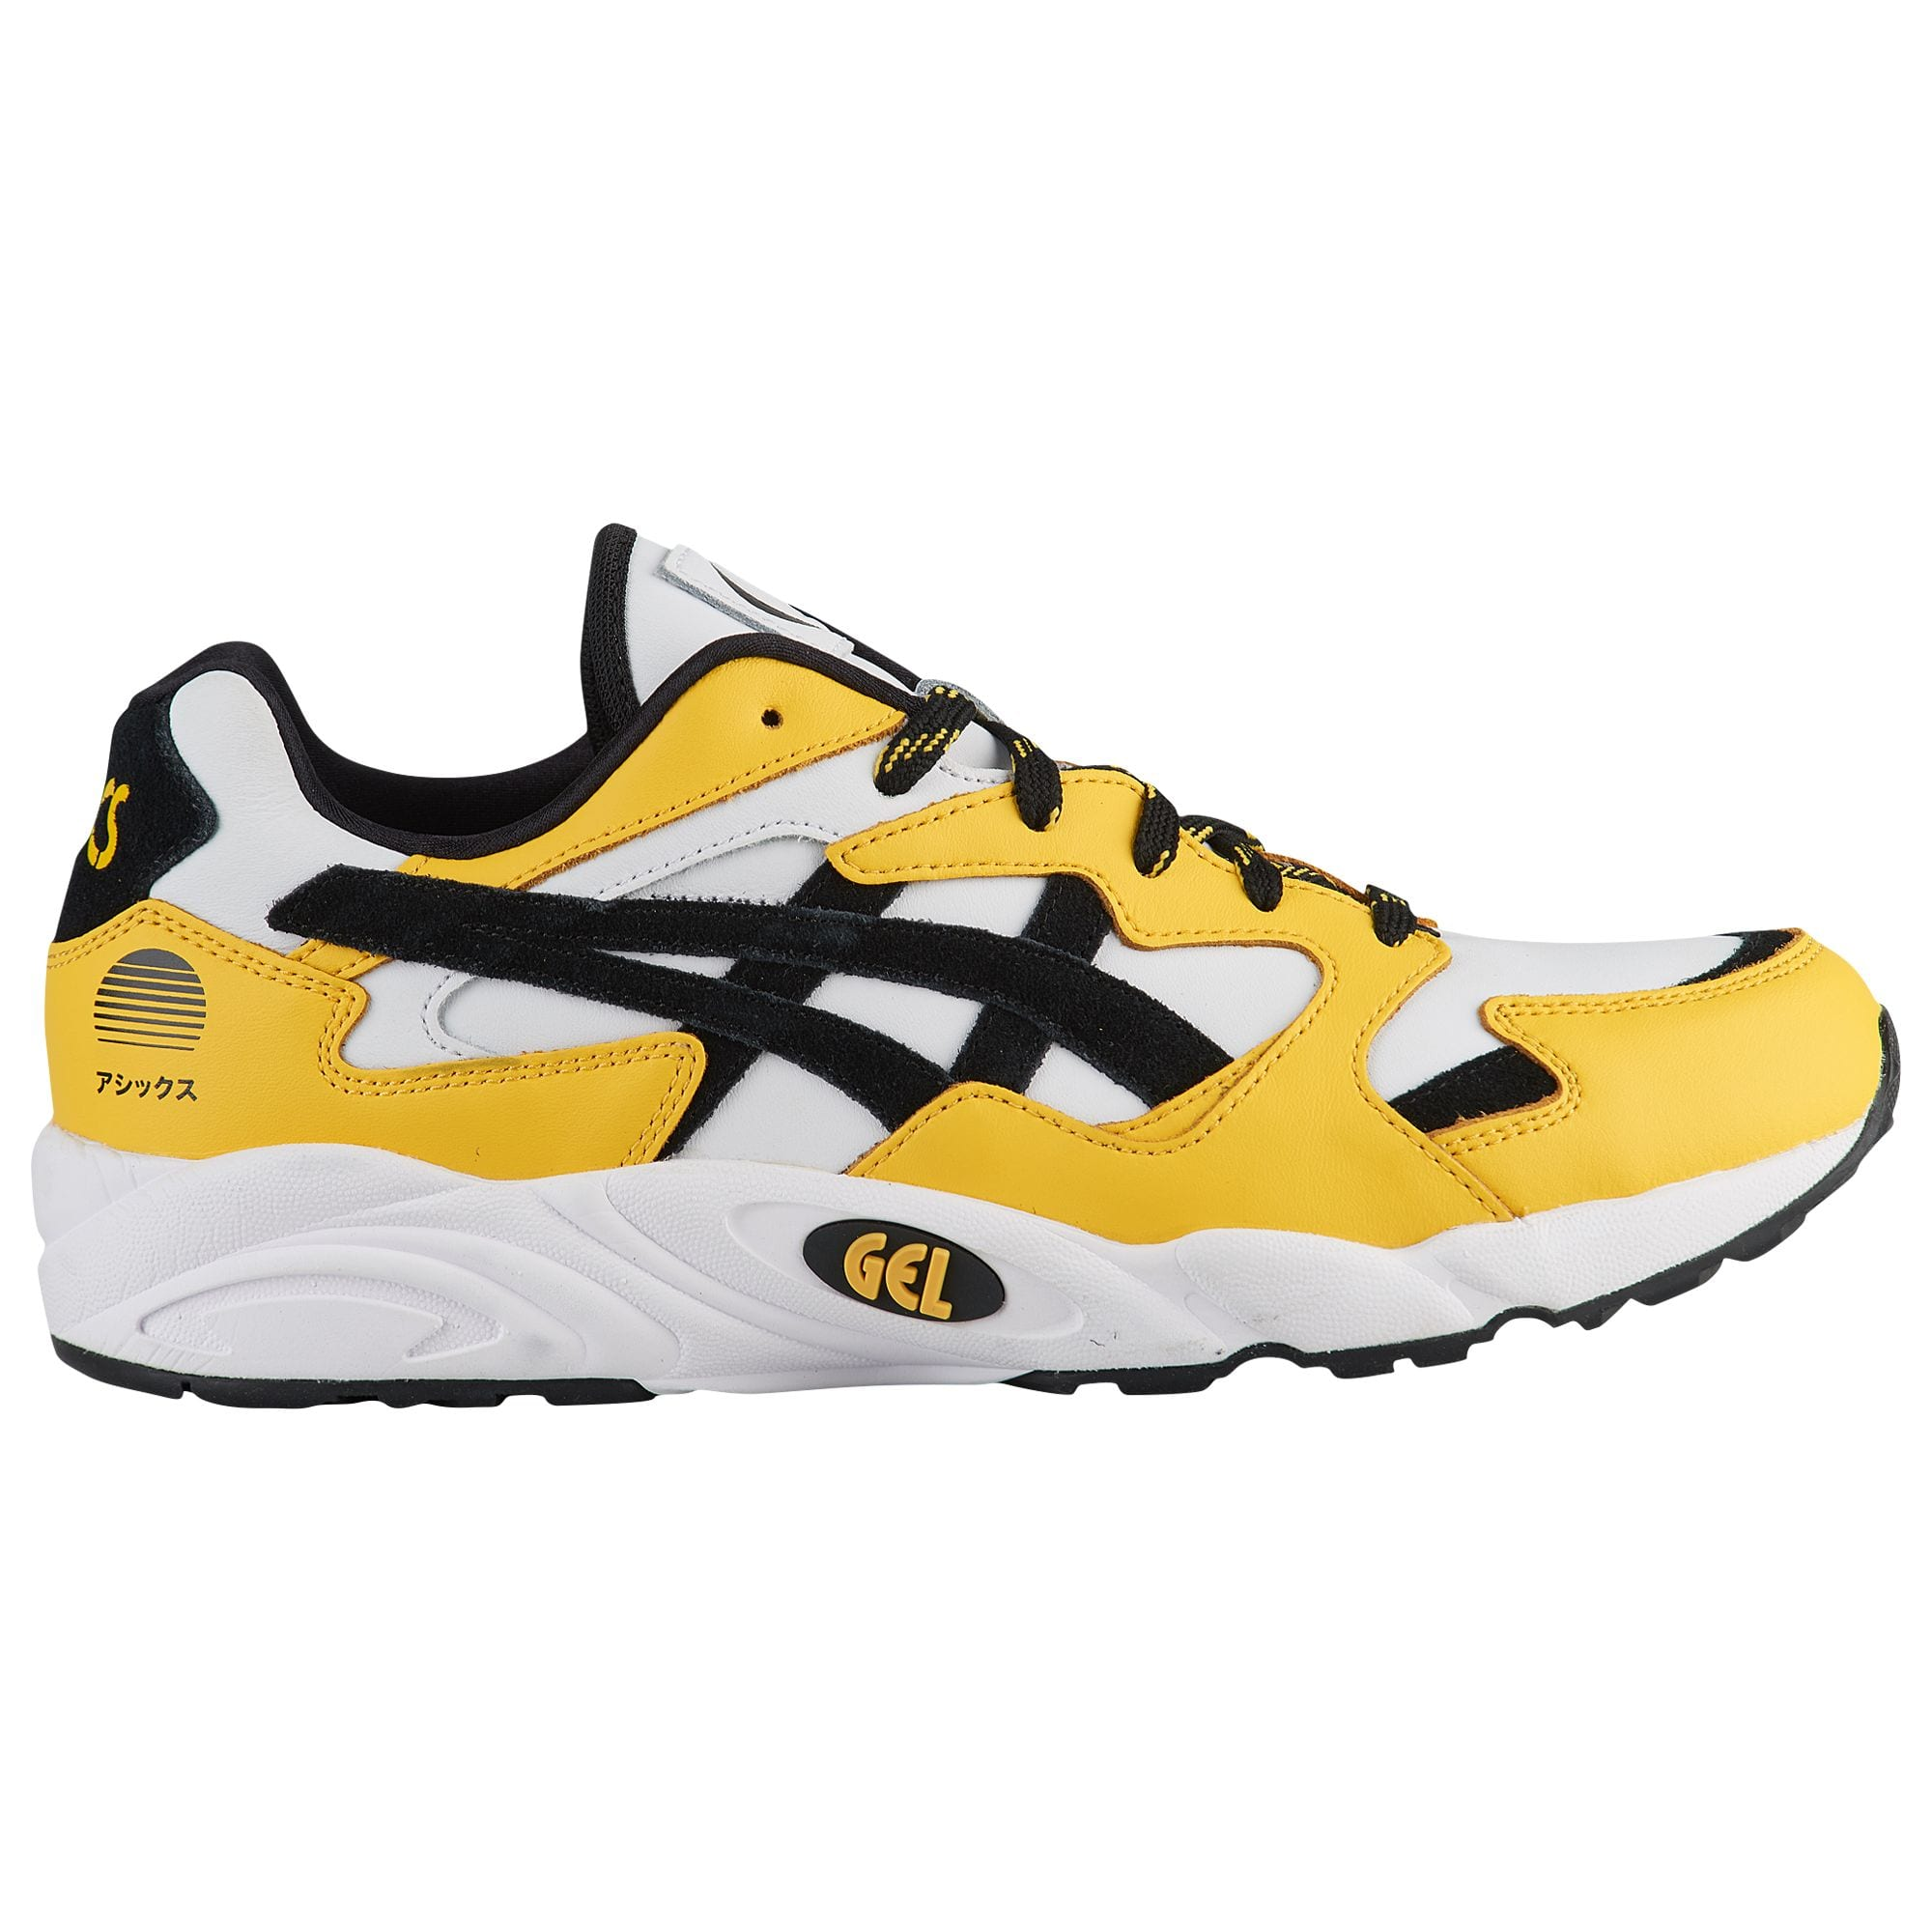 reputable site ec313 aa998 The Foot Locker x AsicsTiger 'Welcome to the Dojo' Pack Has ...